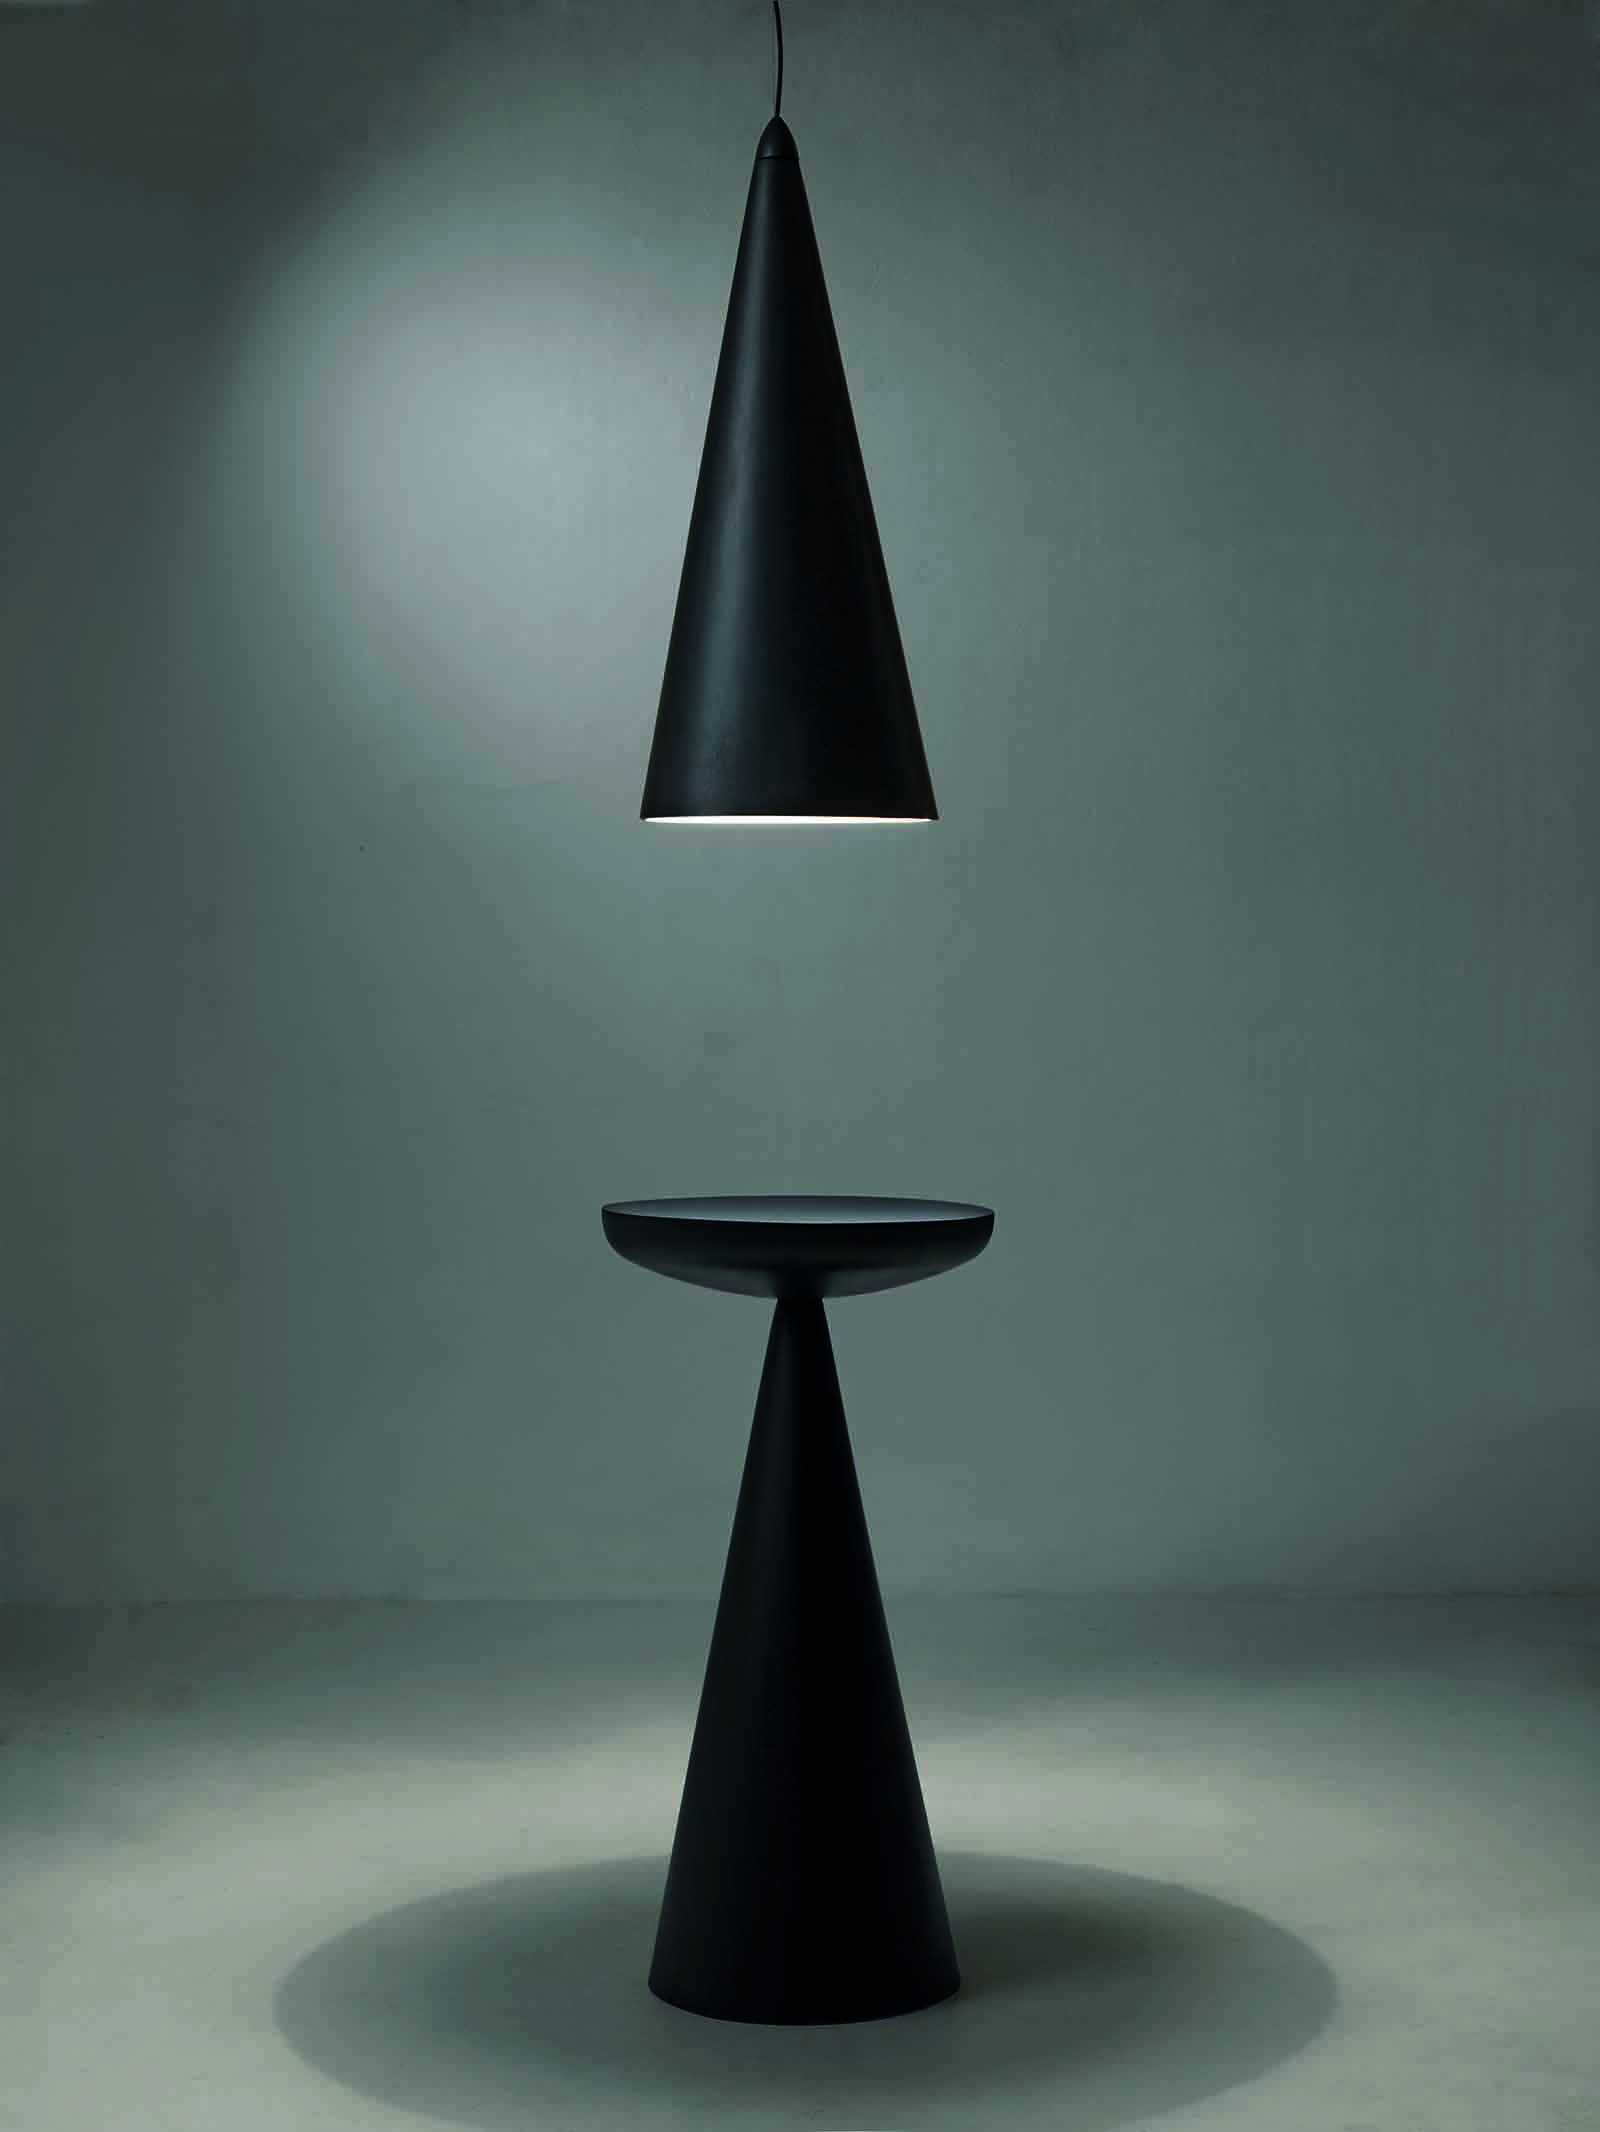 'Lume' pendant and 'Miss' table from imperfetto lab